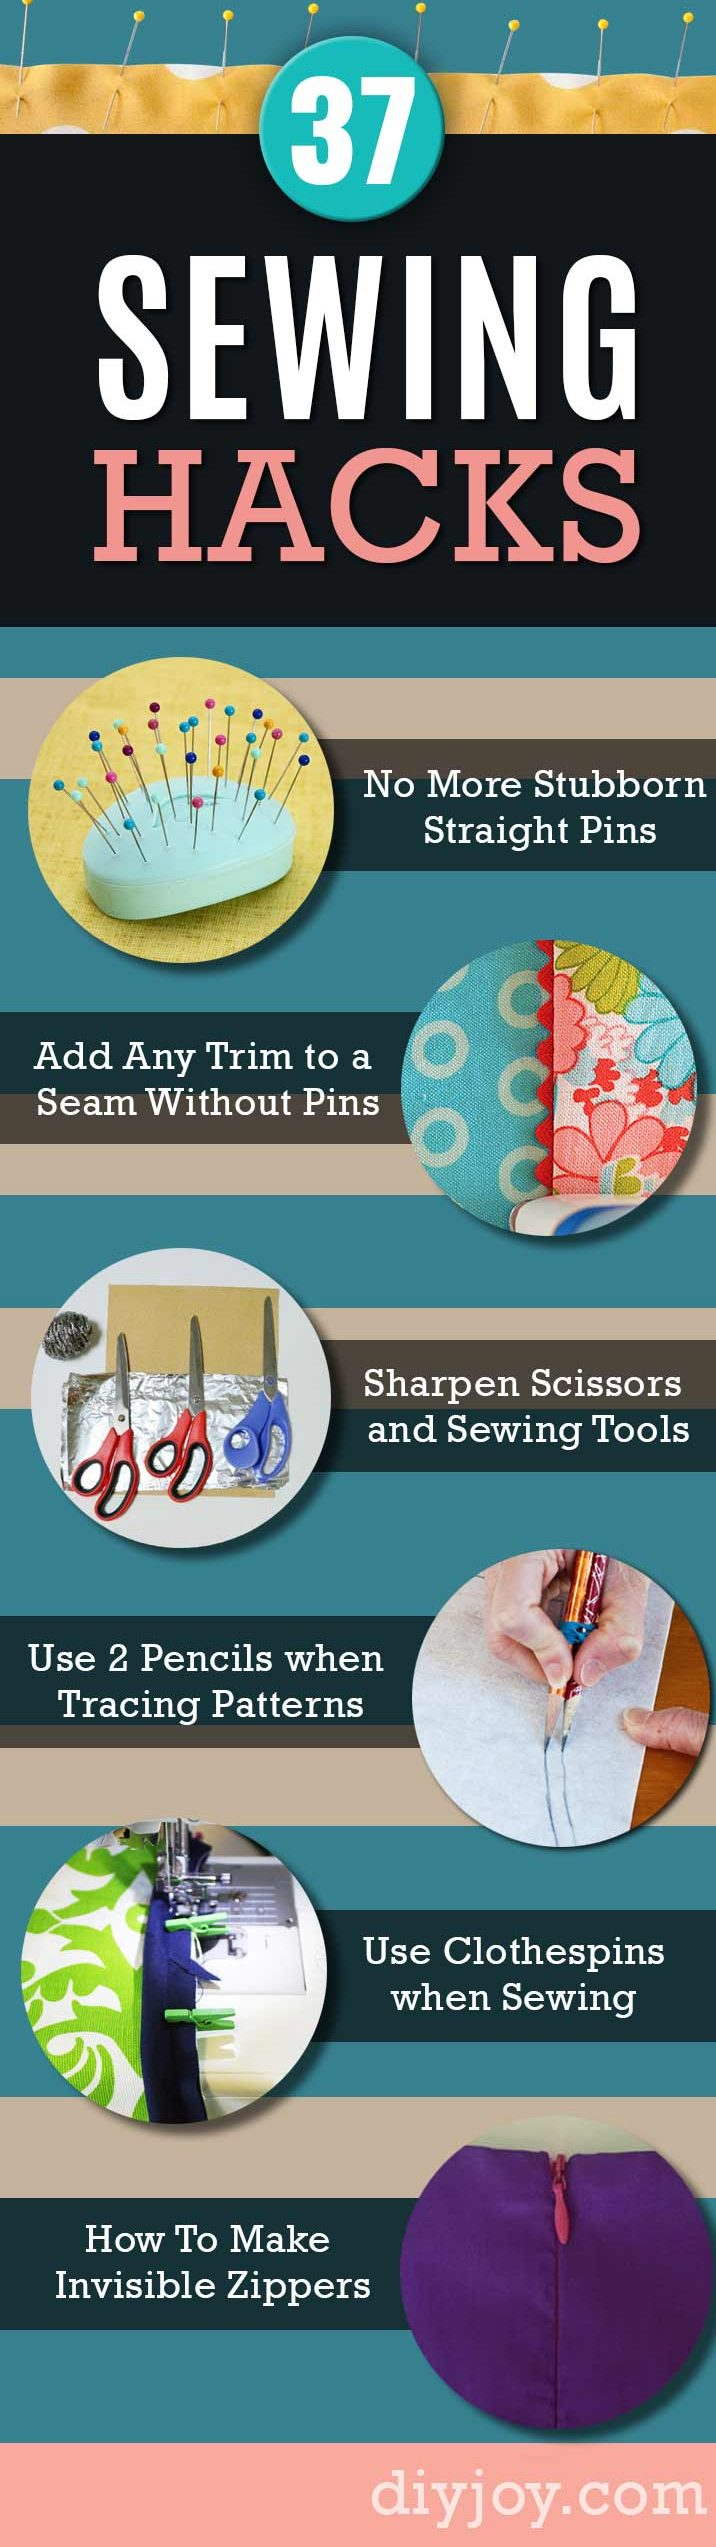 MUST READ: 37 Life-Changing Sewing Hacks